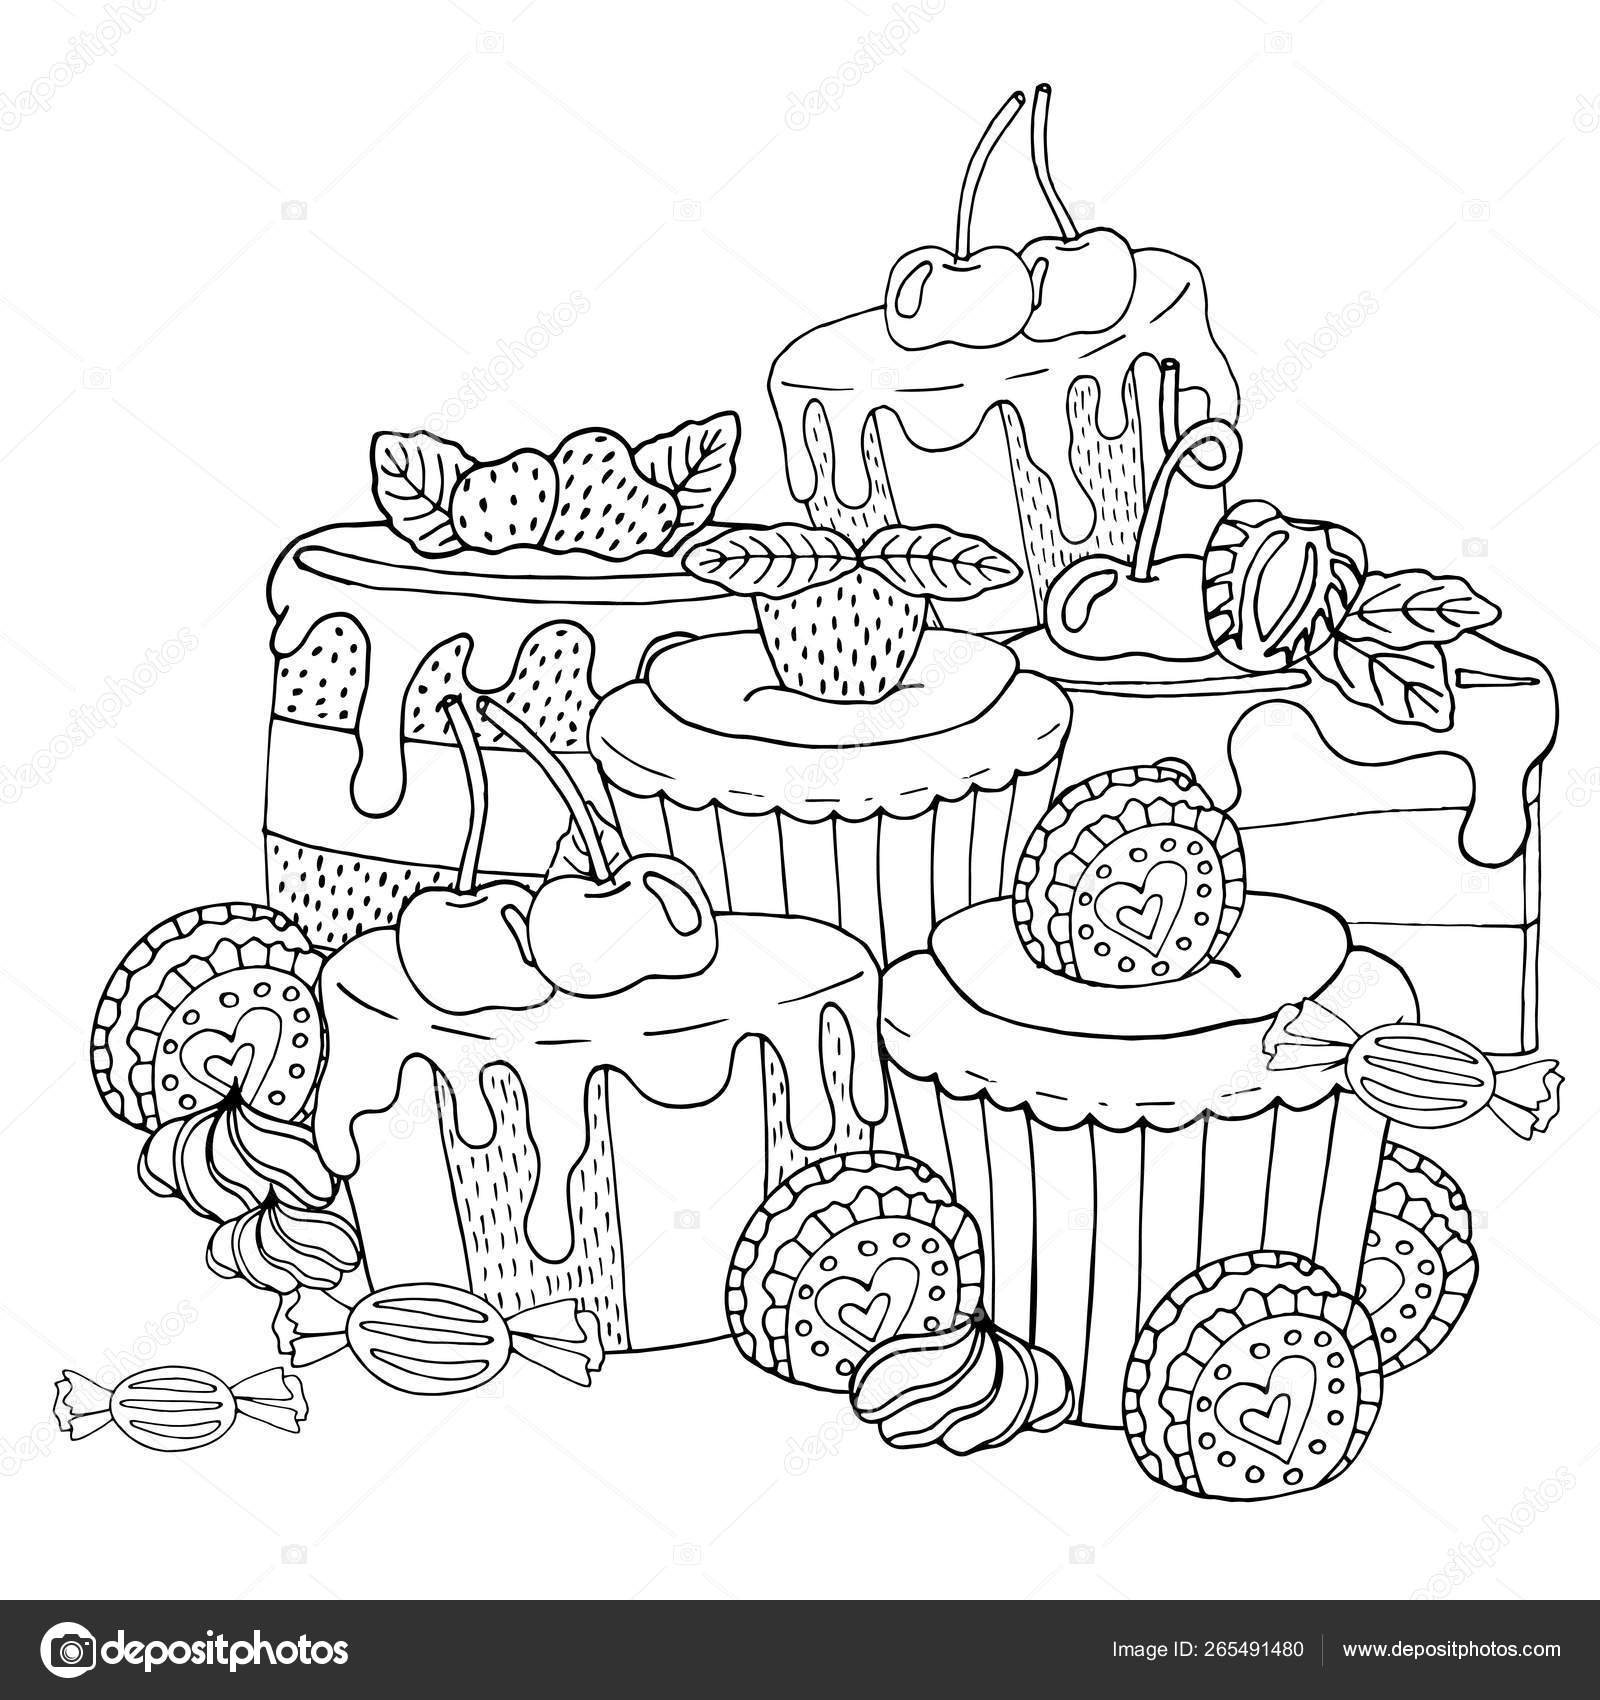 Coloring Page With Cake Cupcake Candy And Other Dessert With B Stock Vector C Ellina200 Mail Ru 265491480